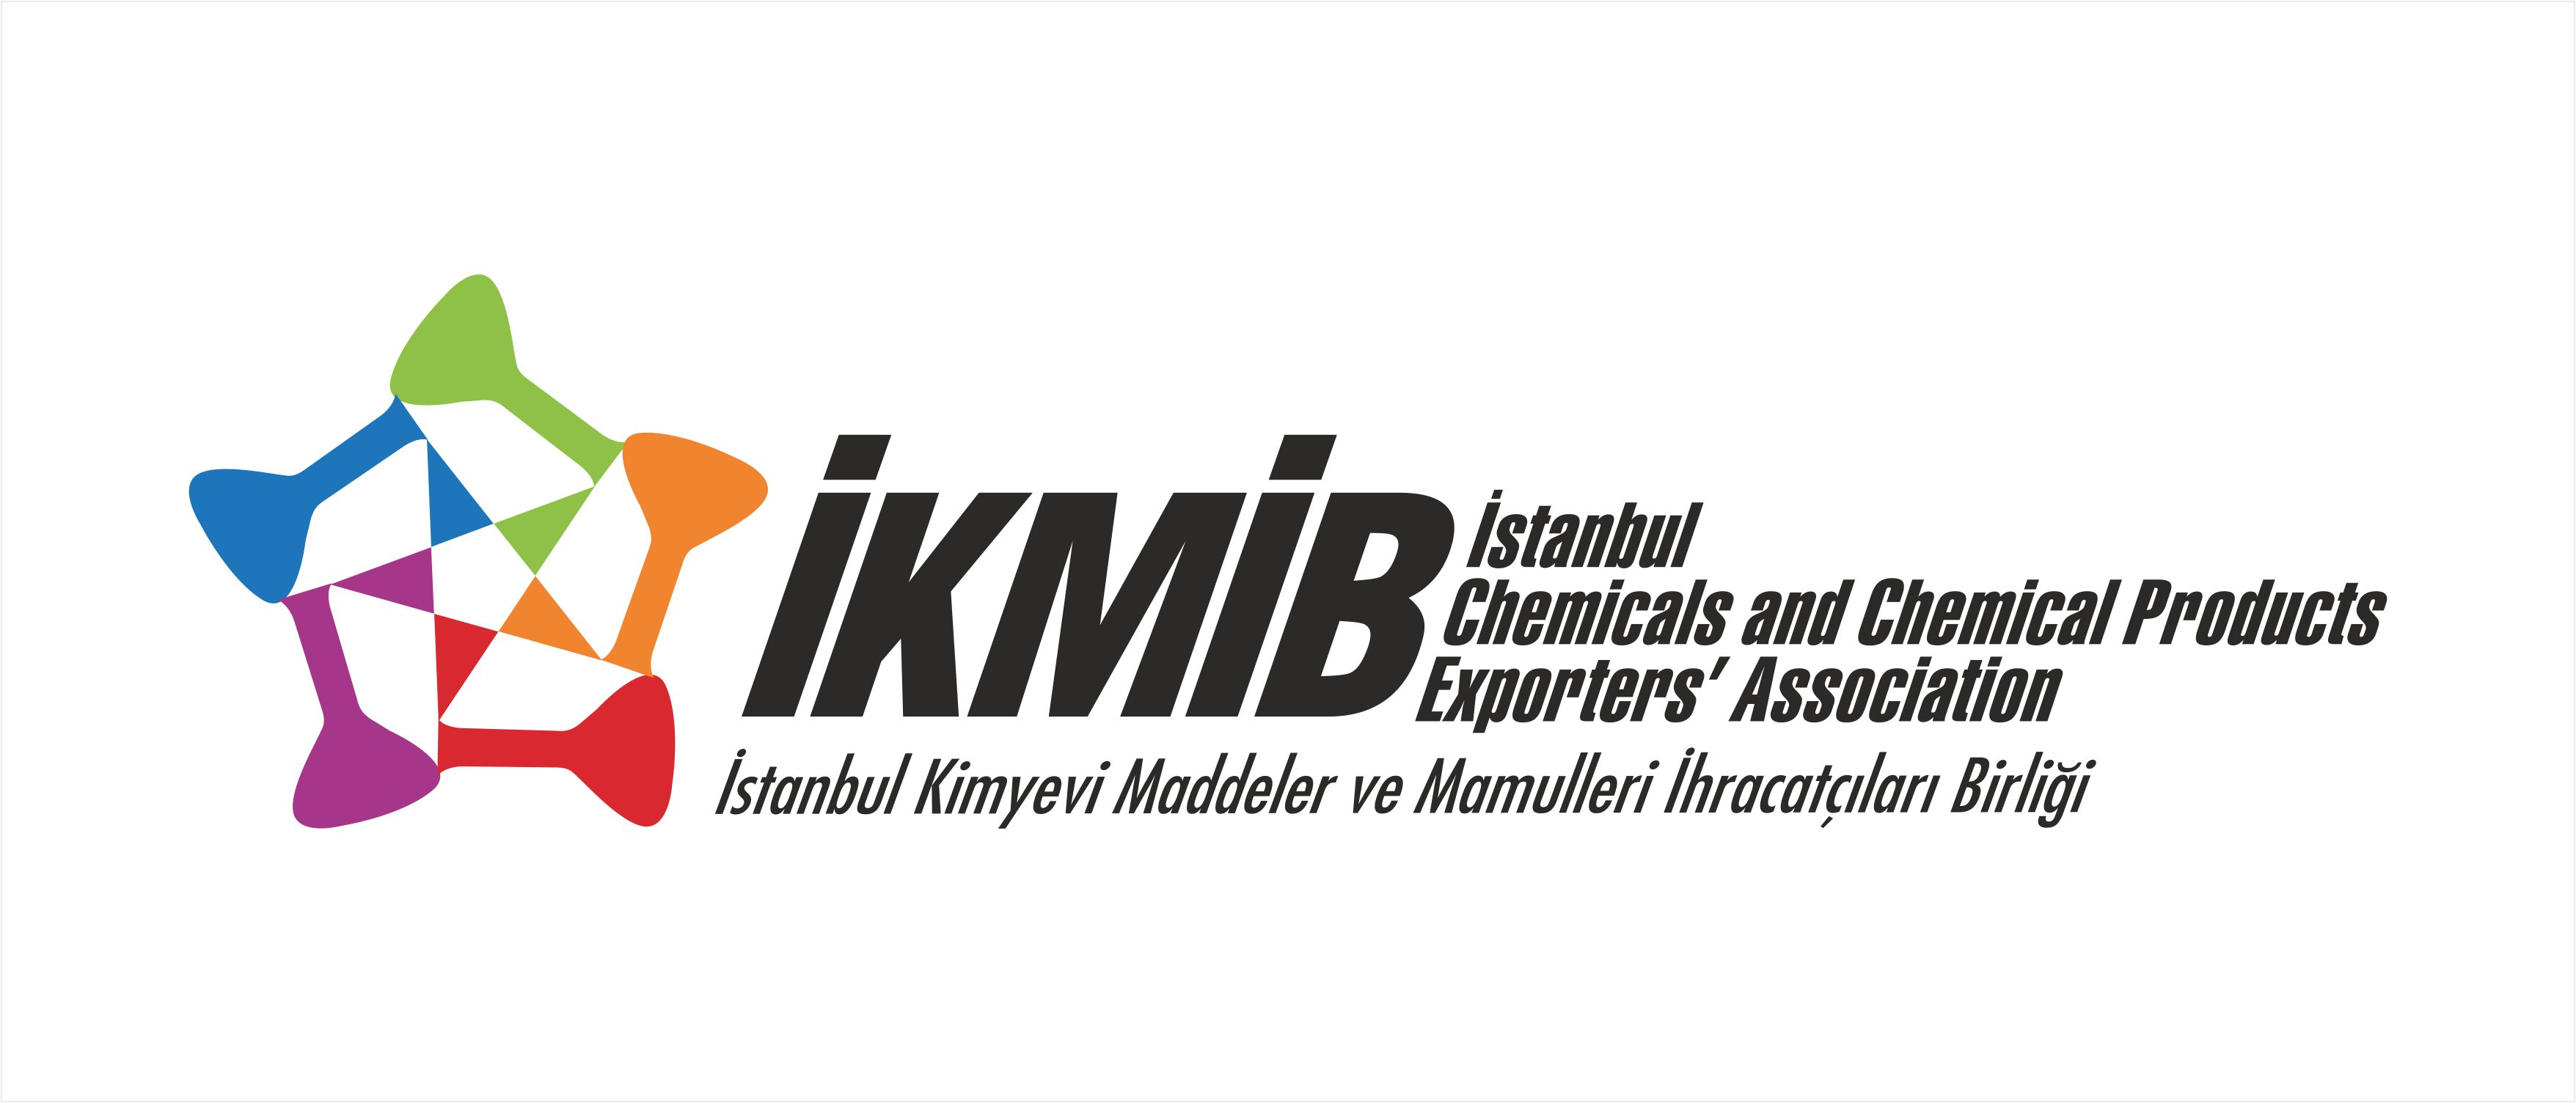 IKMIB-ISTANBUL CHEMICALS AND CHEMICAL PRODUCTS EXPORTERS ASSOCIATION